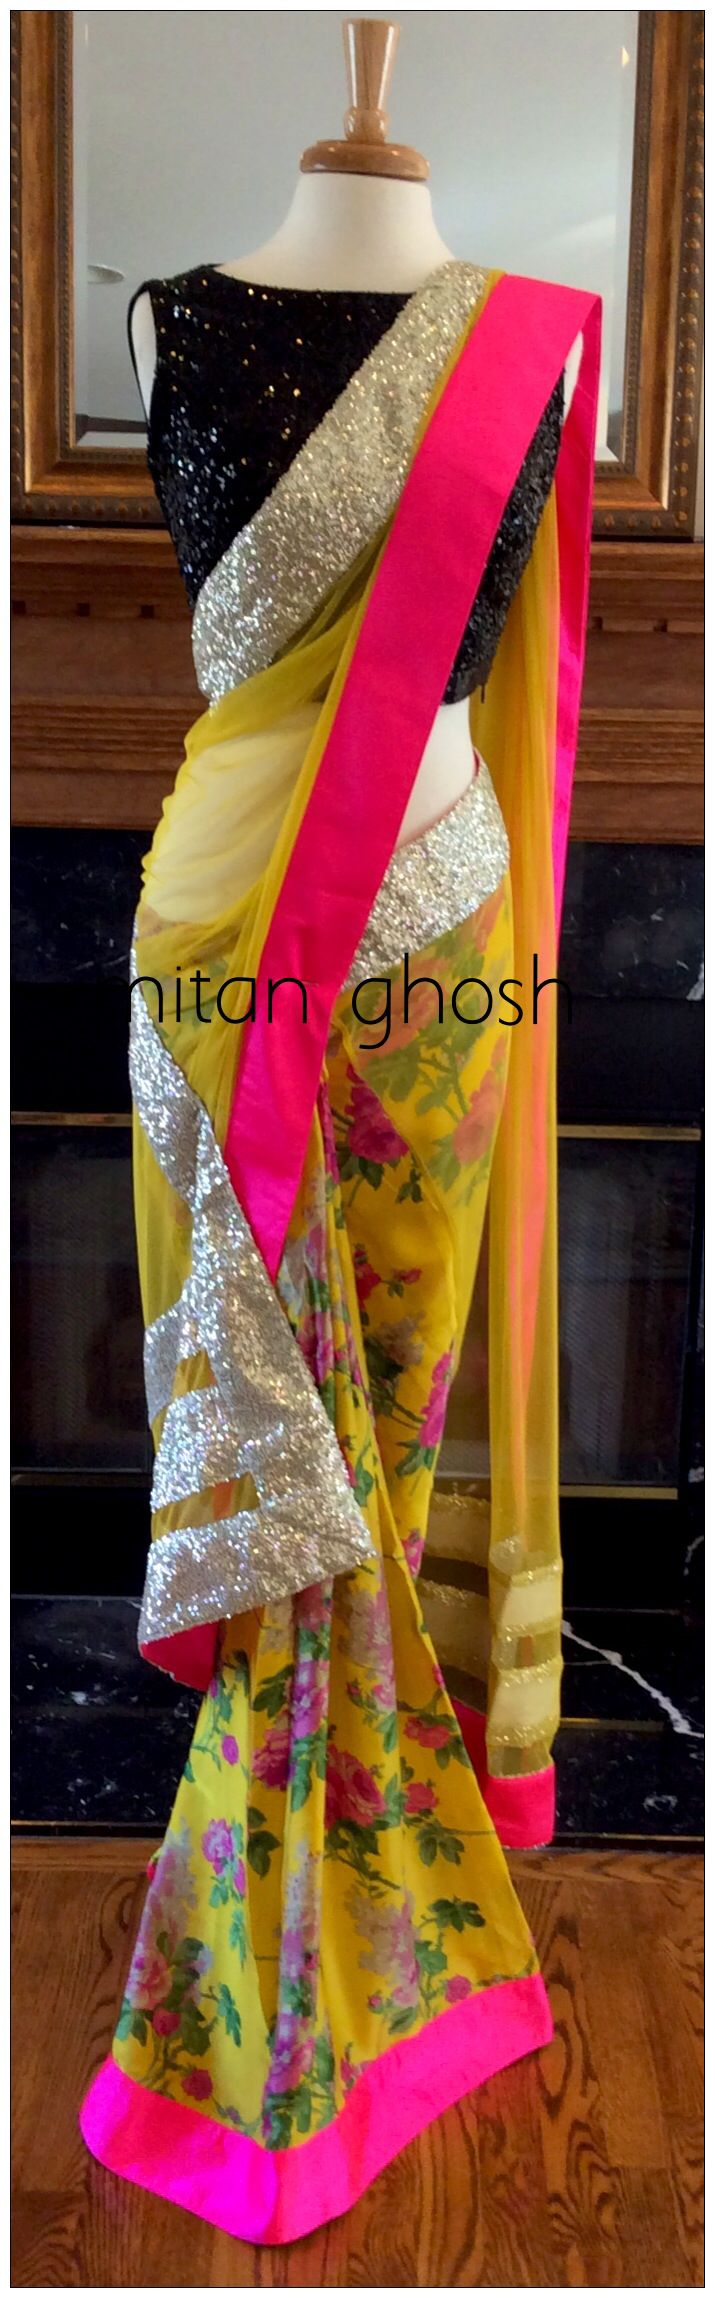 It's a tad busy but I kinda like it!   Printed georgette and net saree